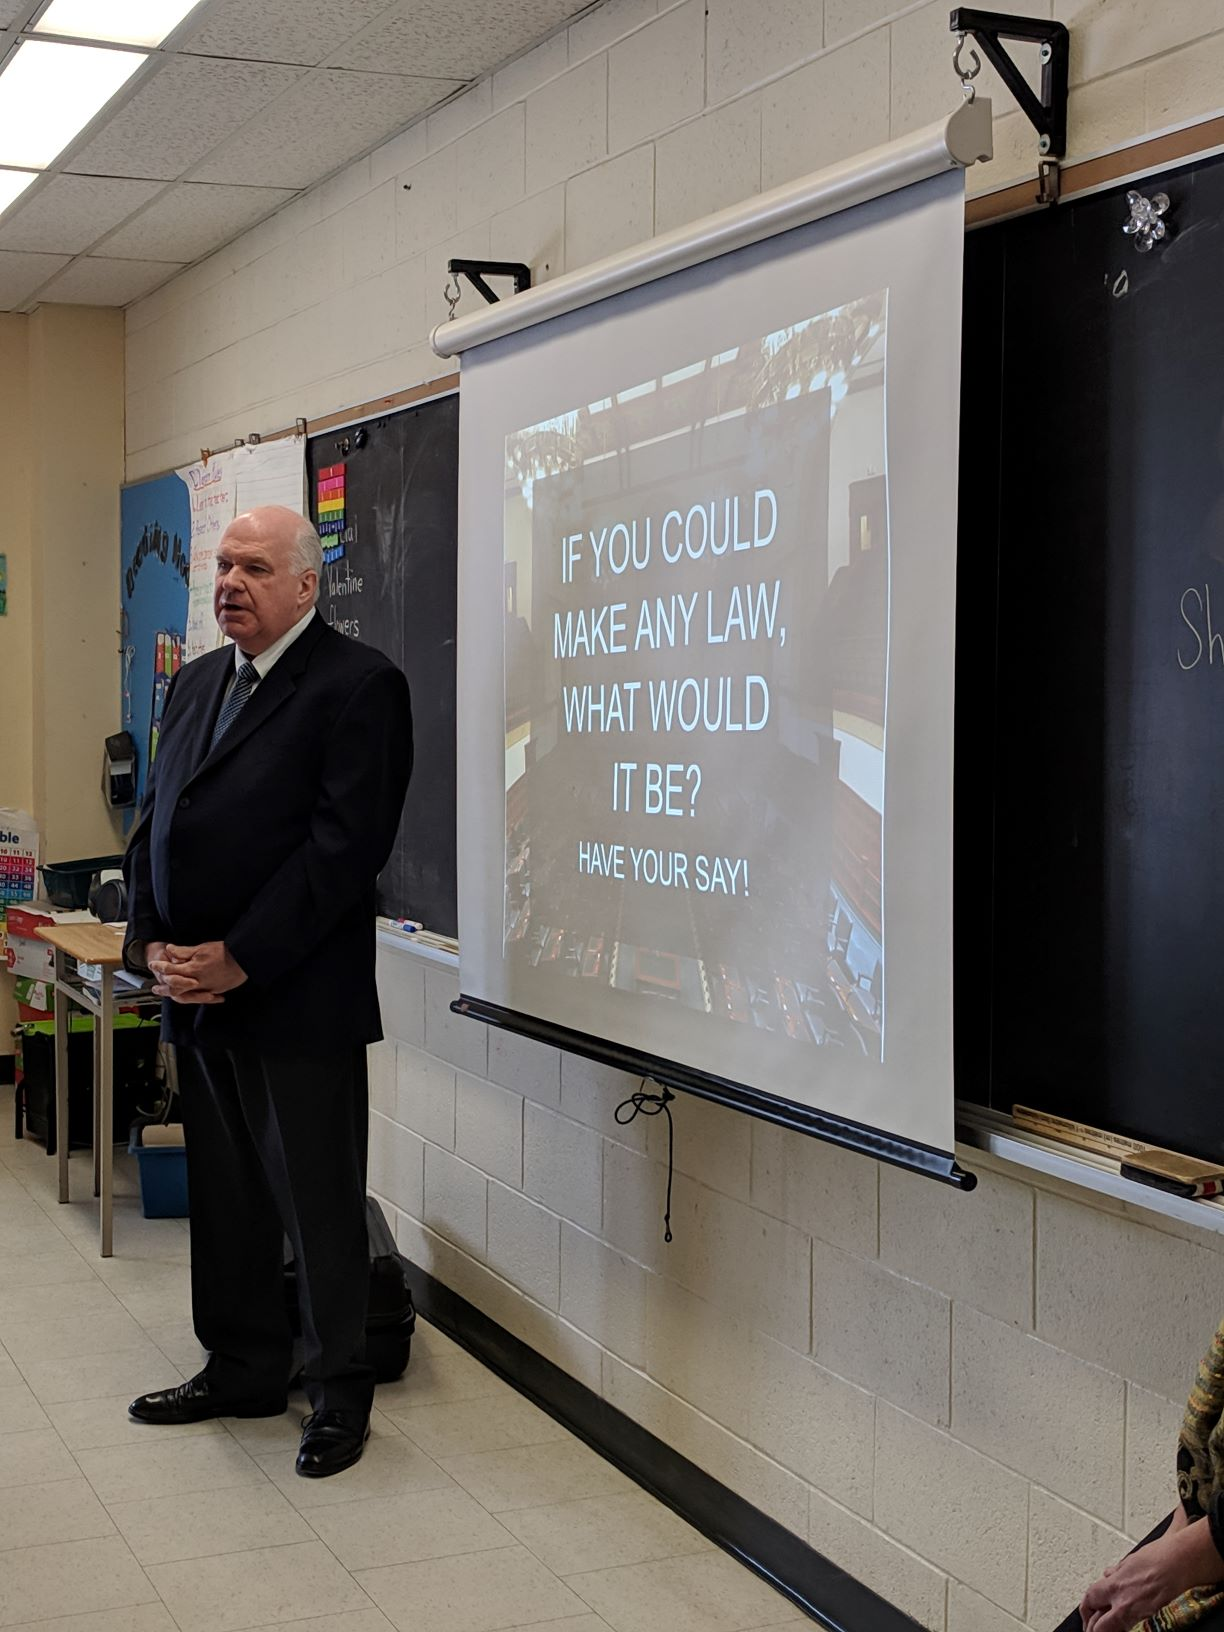 St. Marys Public School visit grade 5 March 5 2019.jpg WEBSITE